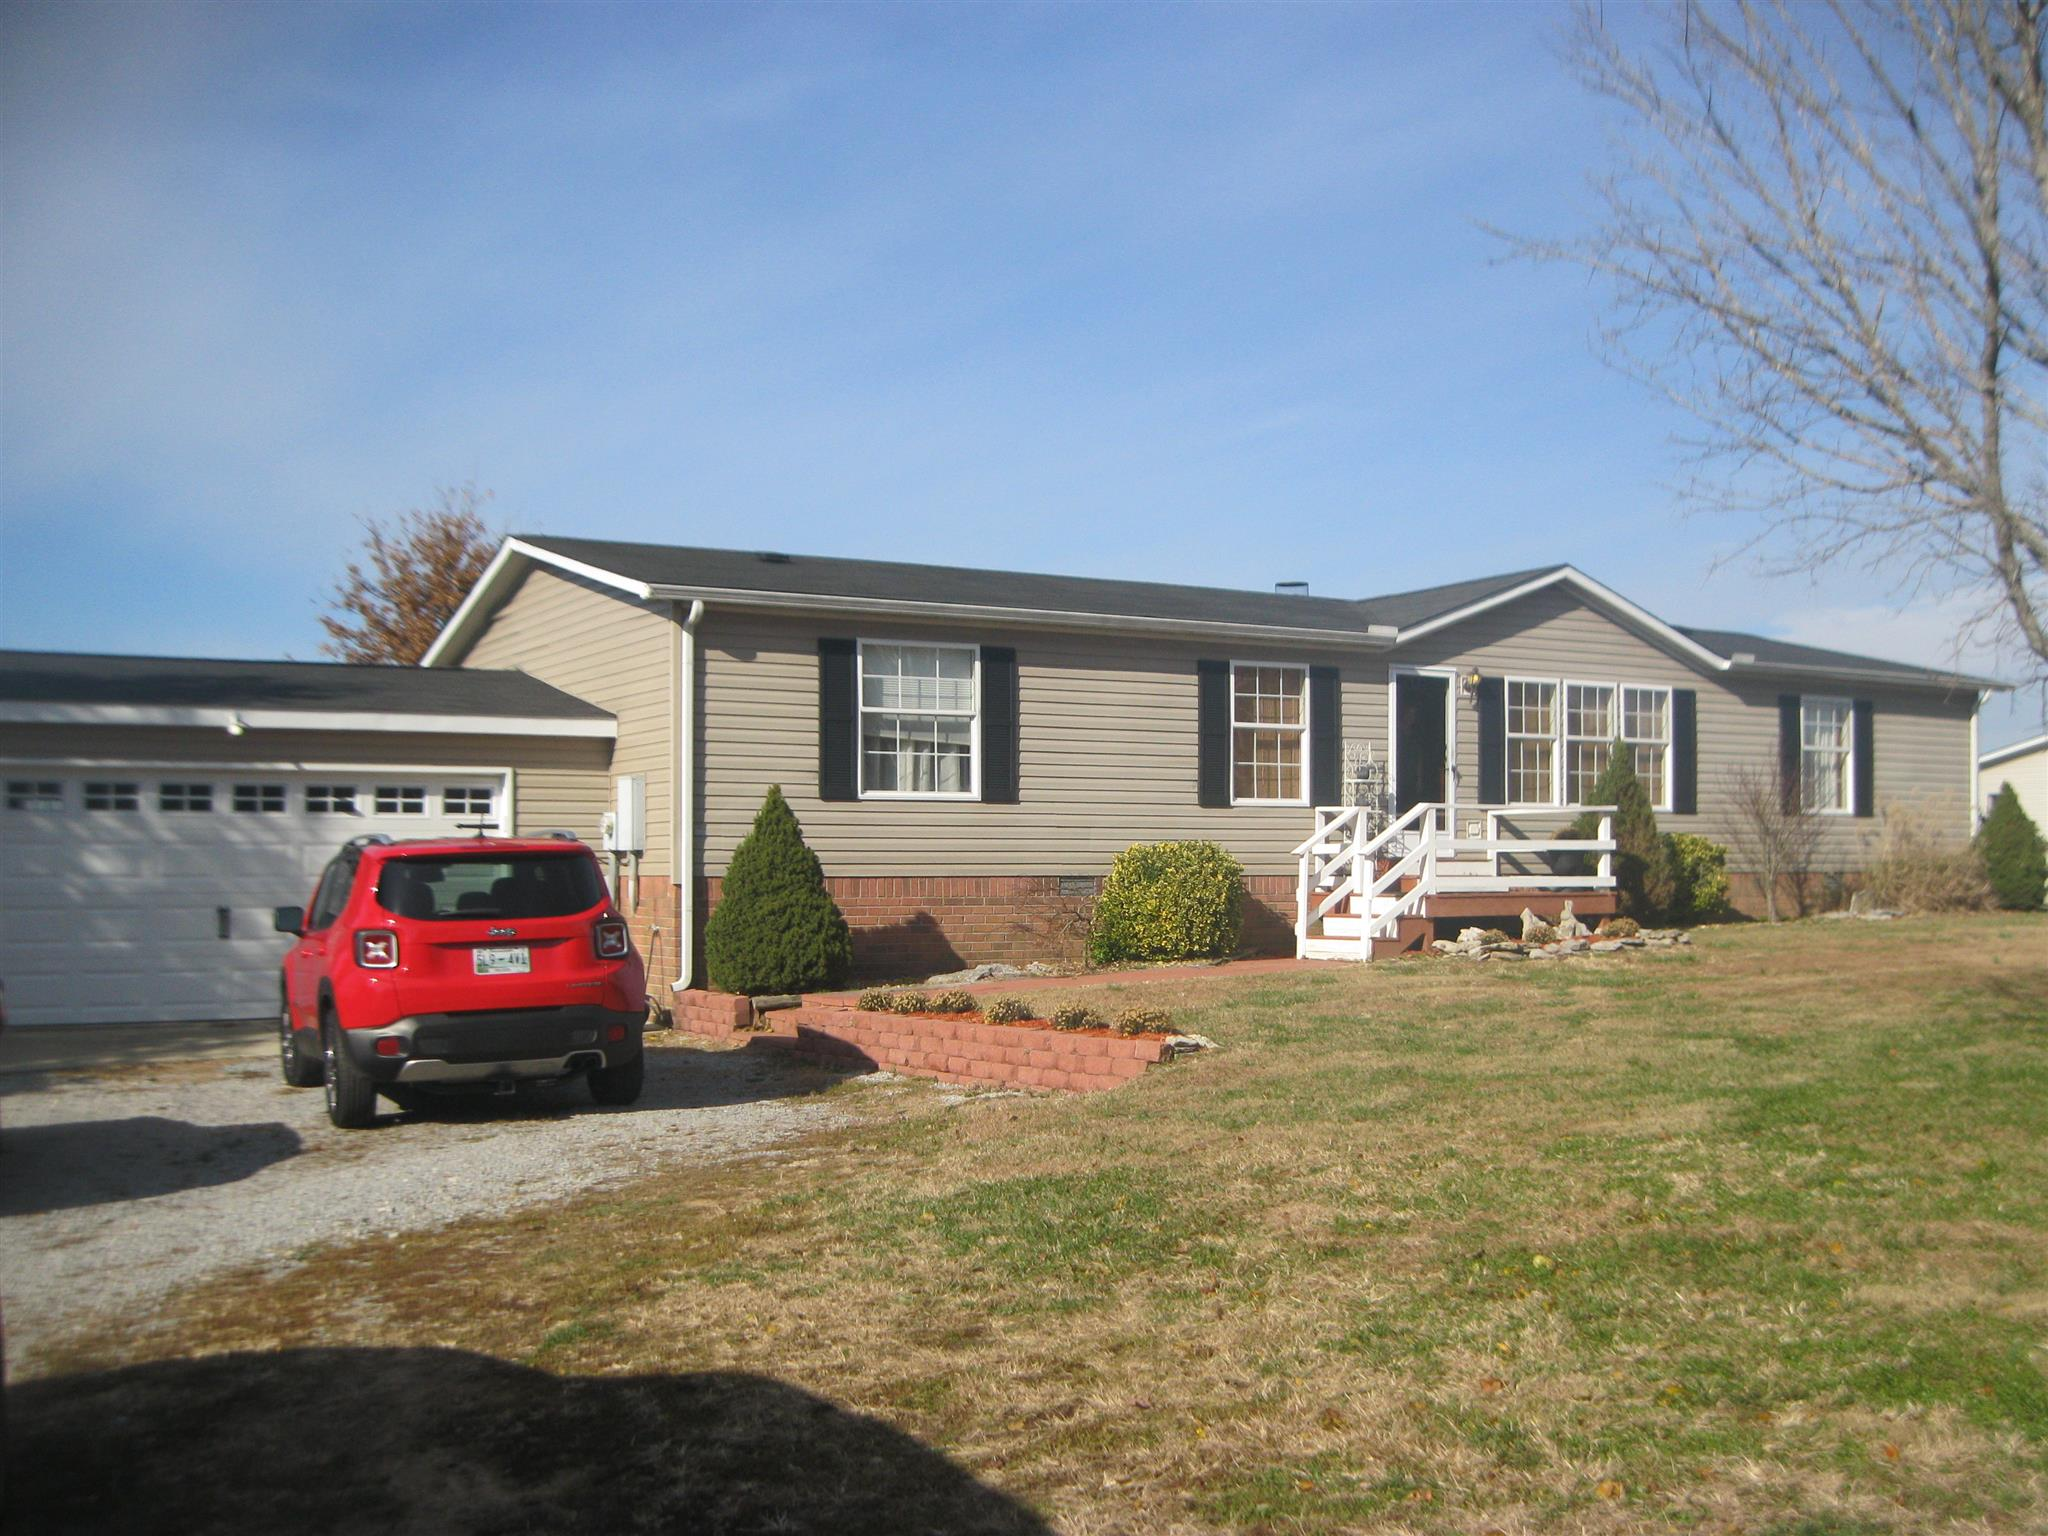 3456 Beasleys Bend Rd, NW, Lebanon in Wilson County County, TN 37087 Home for Sale